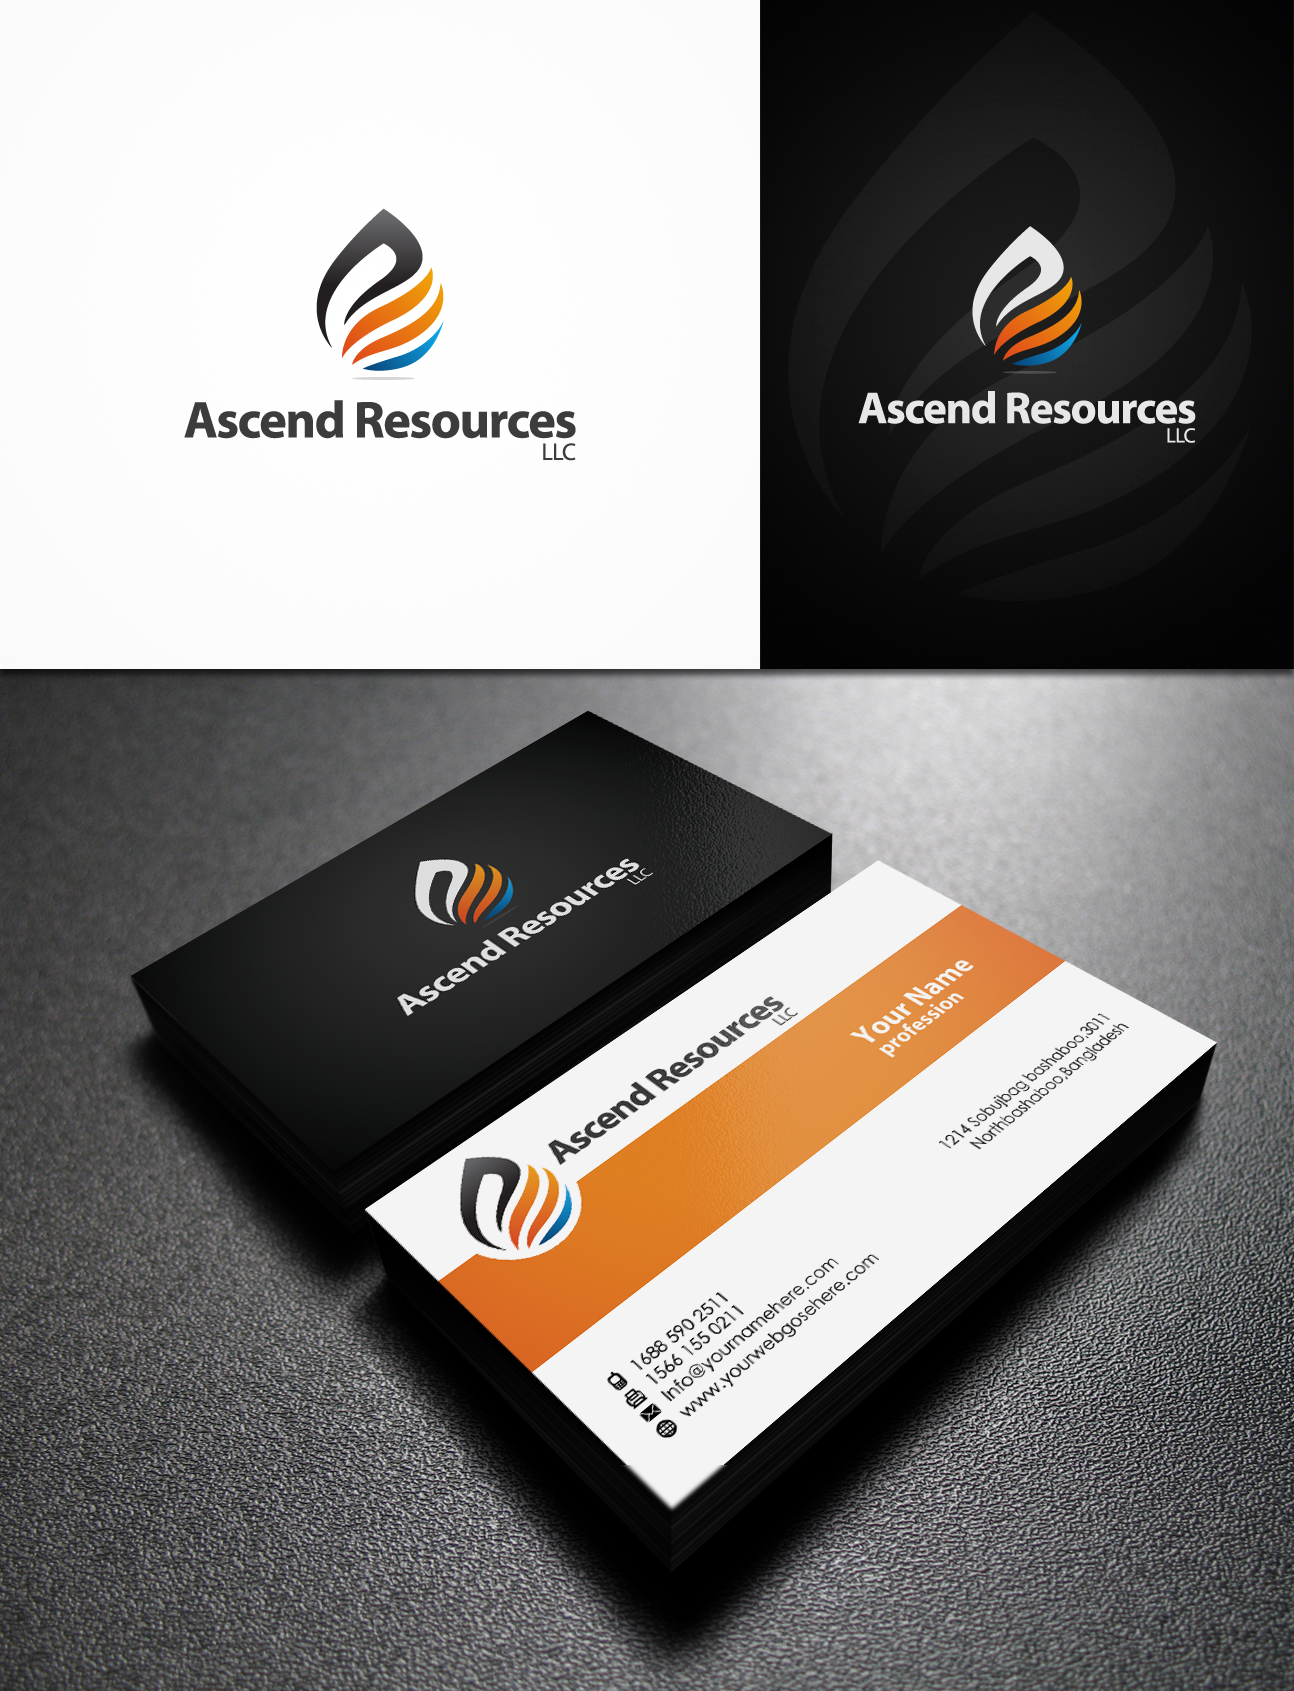 New logo wanted for Ascend Energy